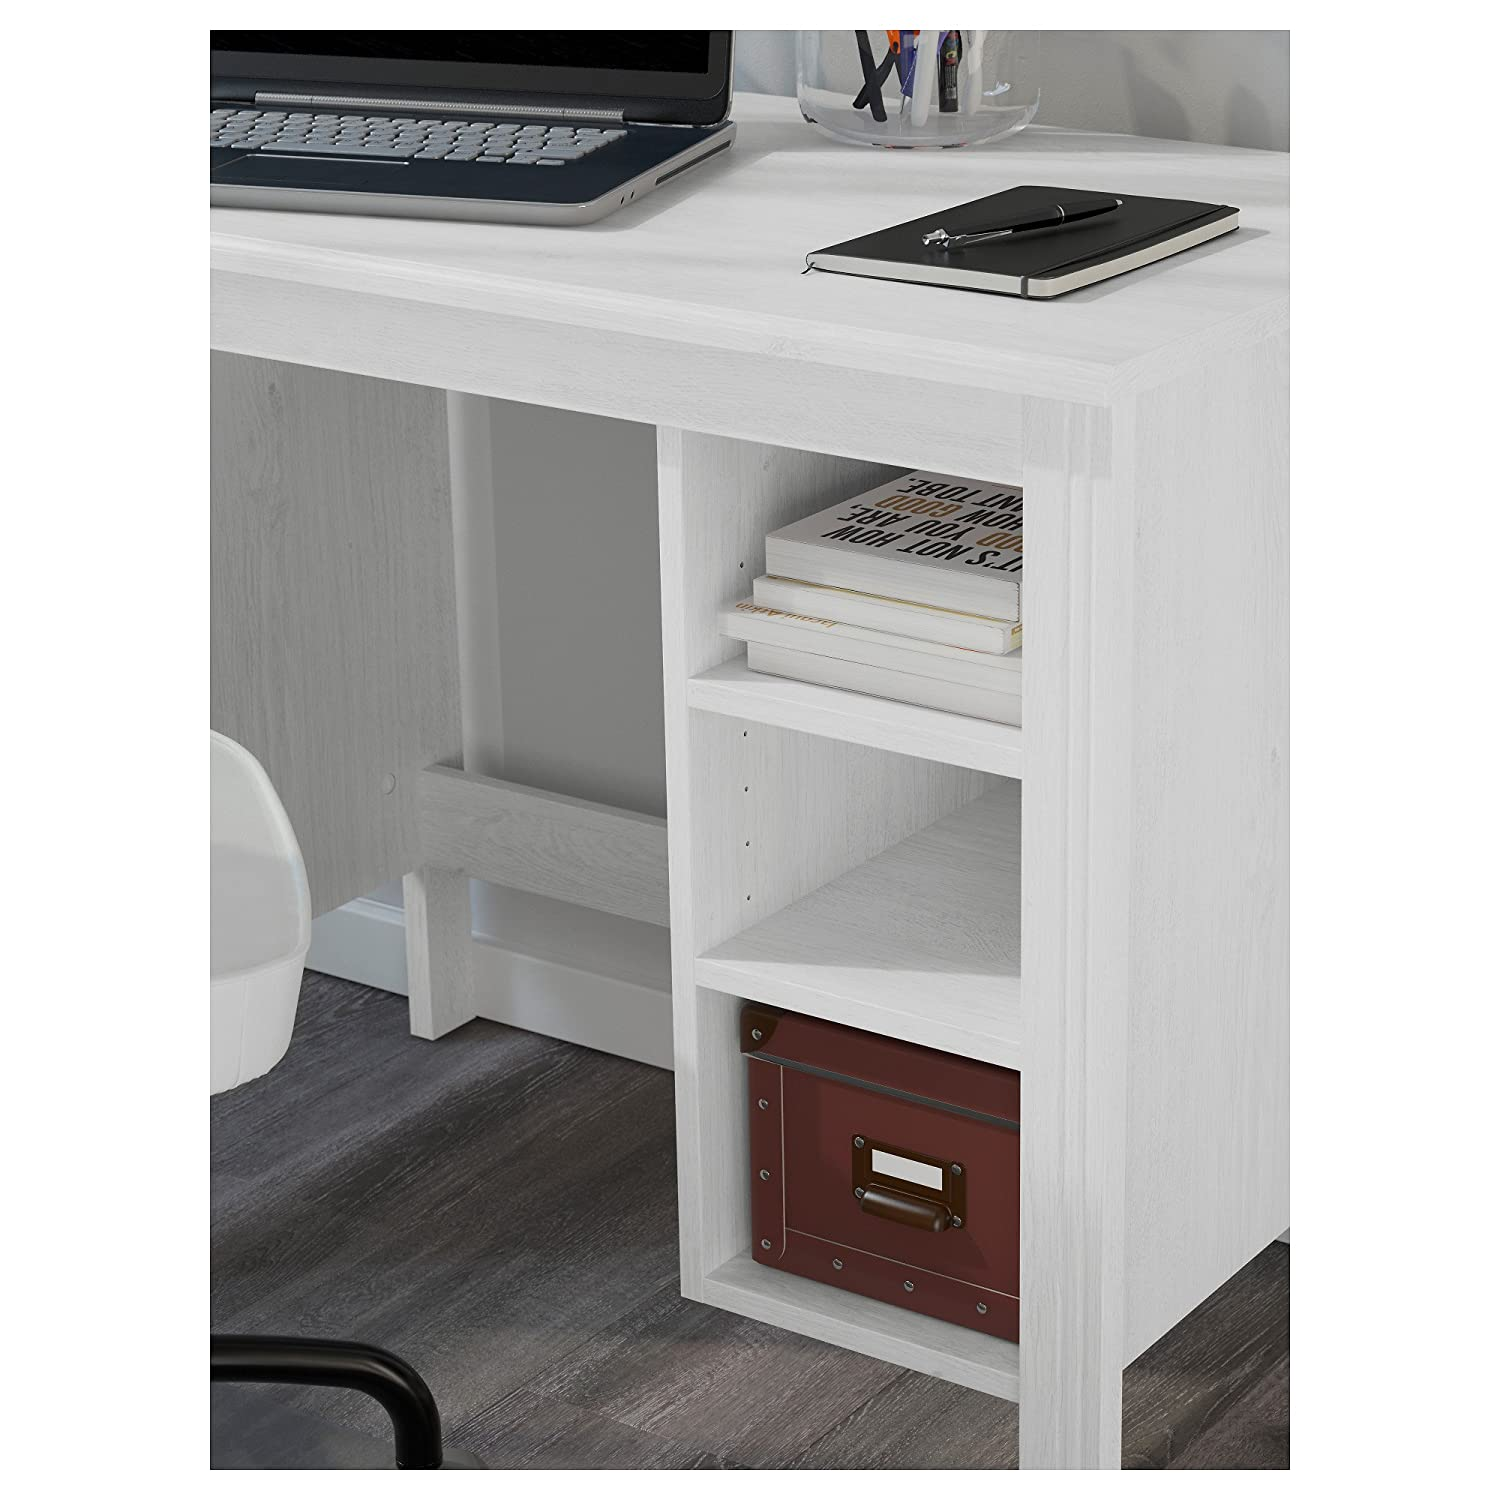 ZigZag Trading Ltd IKEA BRUSALI – Escritorio Blanco: Amazon.es: Hogar